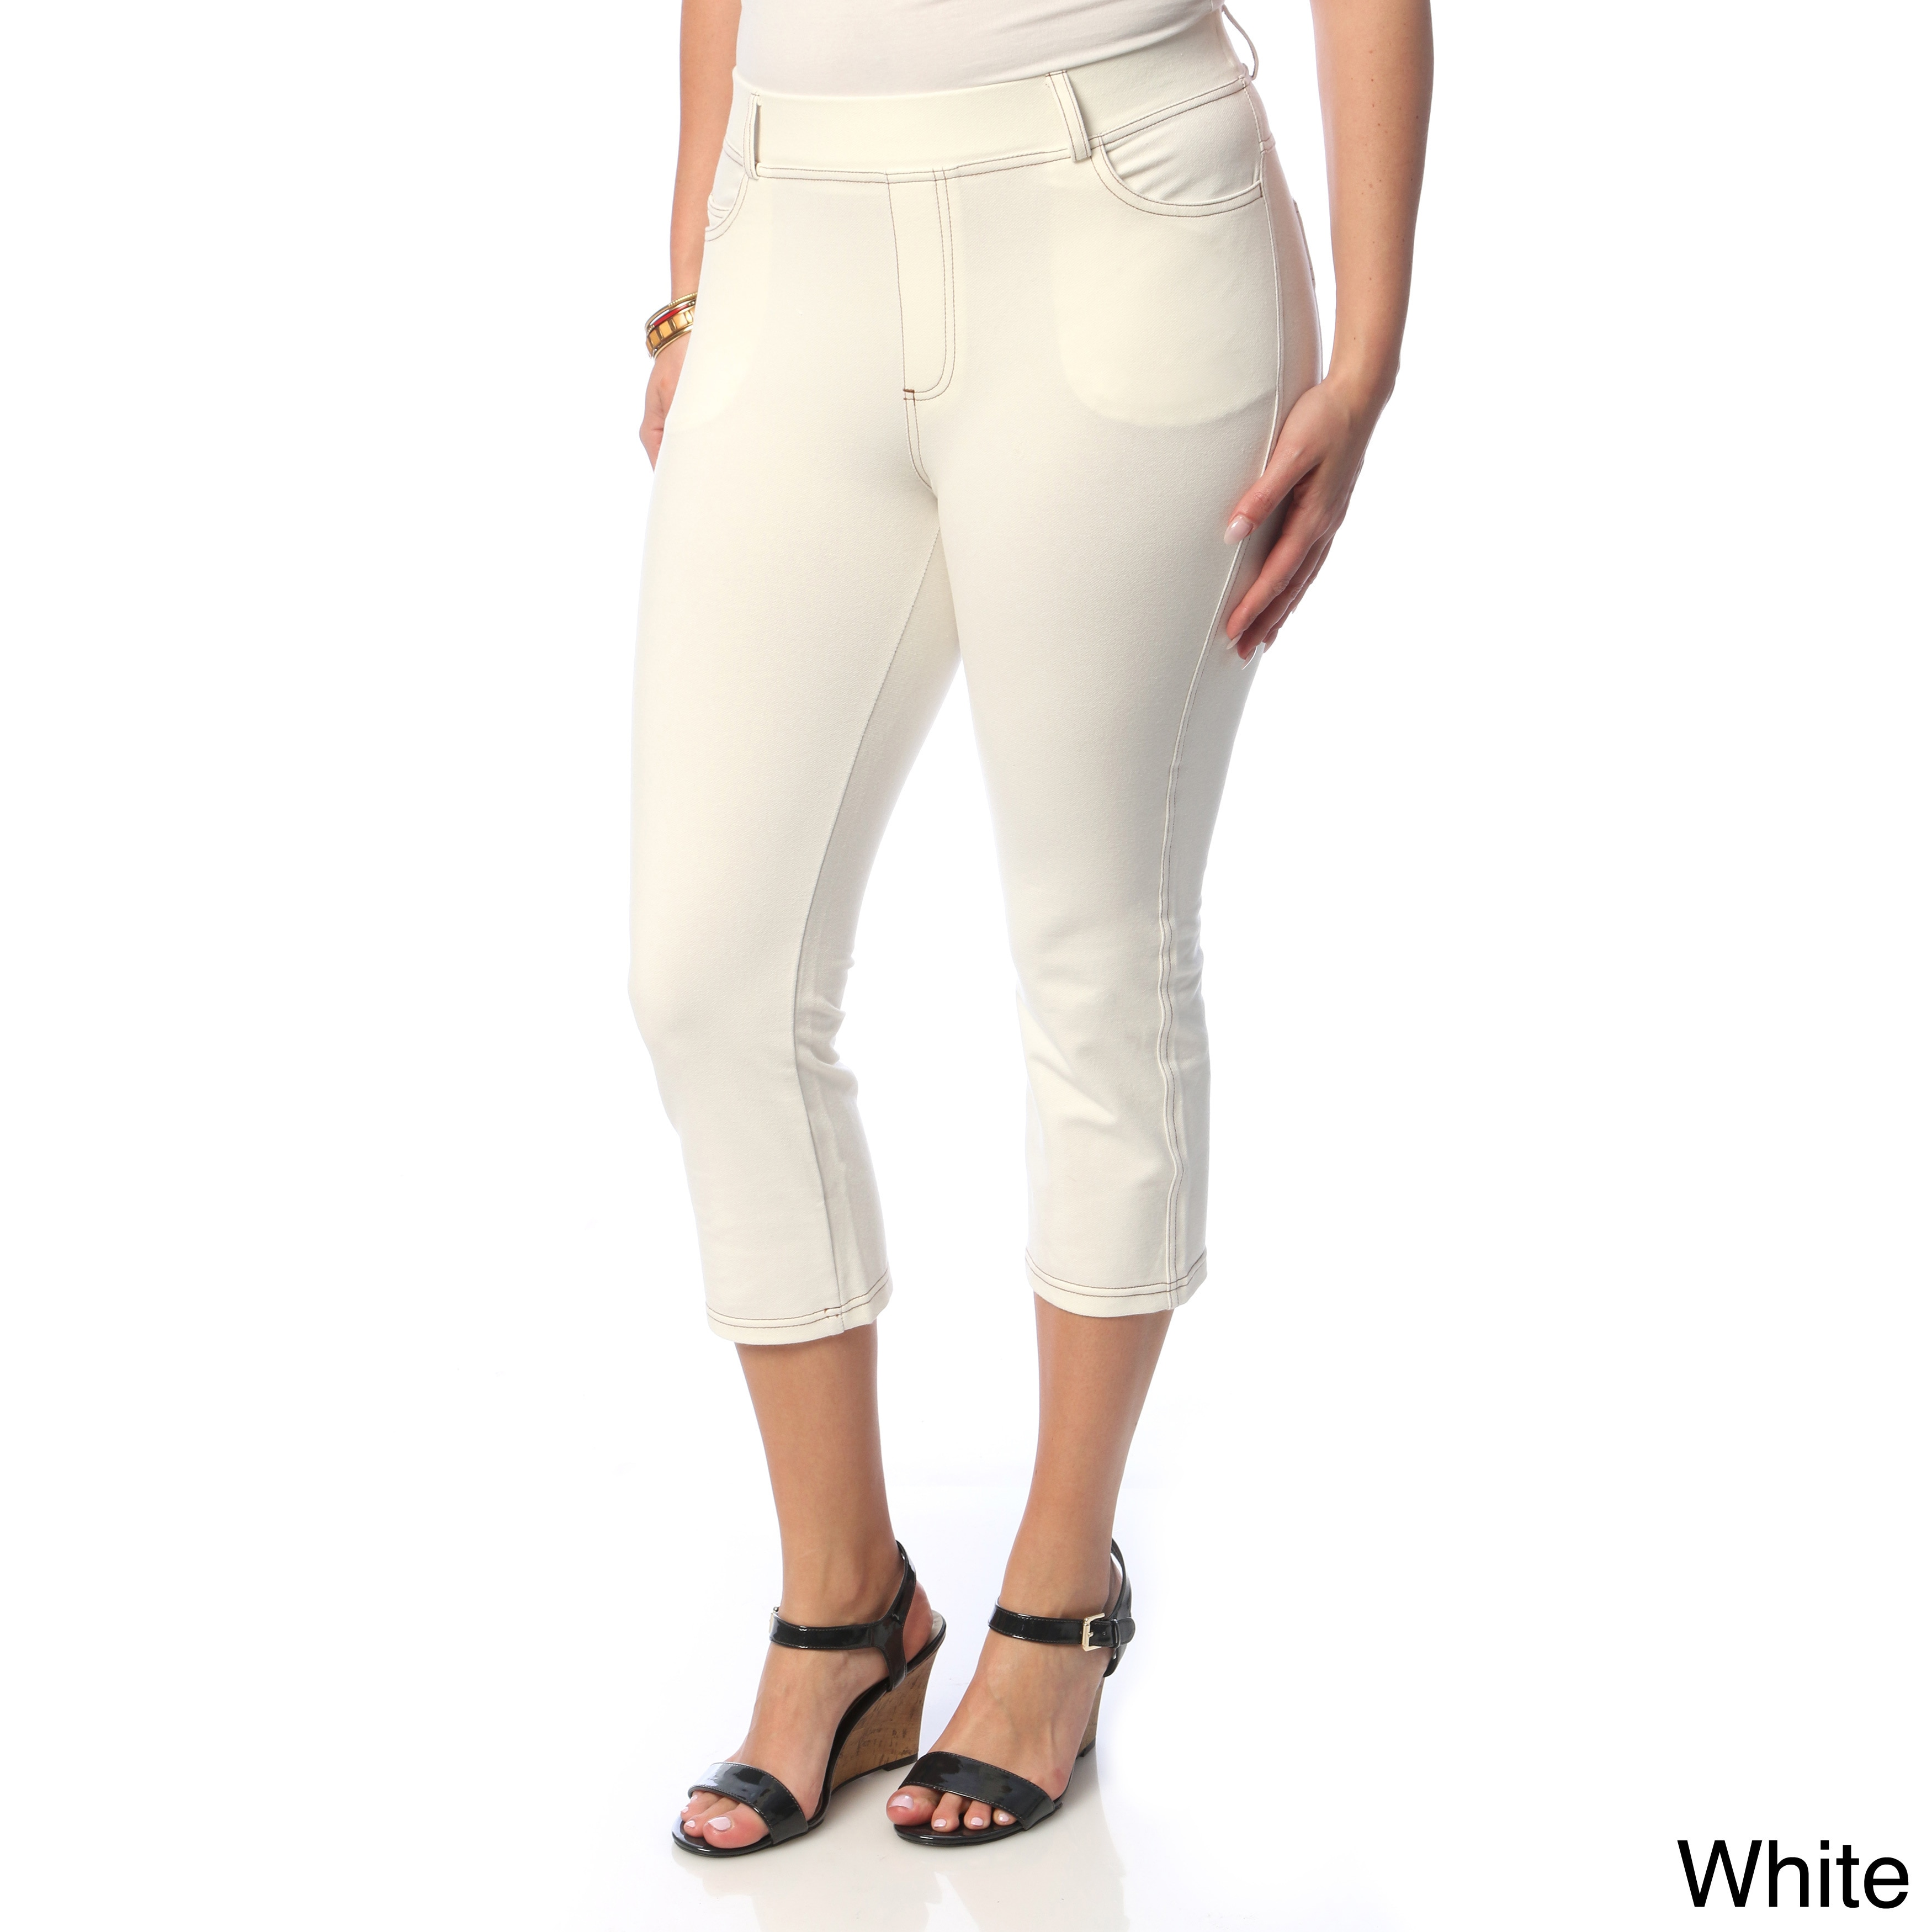 High-Waisted 3X Women/'s Easy-Fit Knit Denim Pants